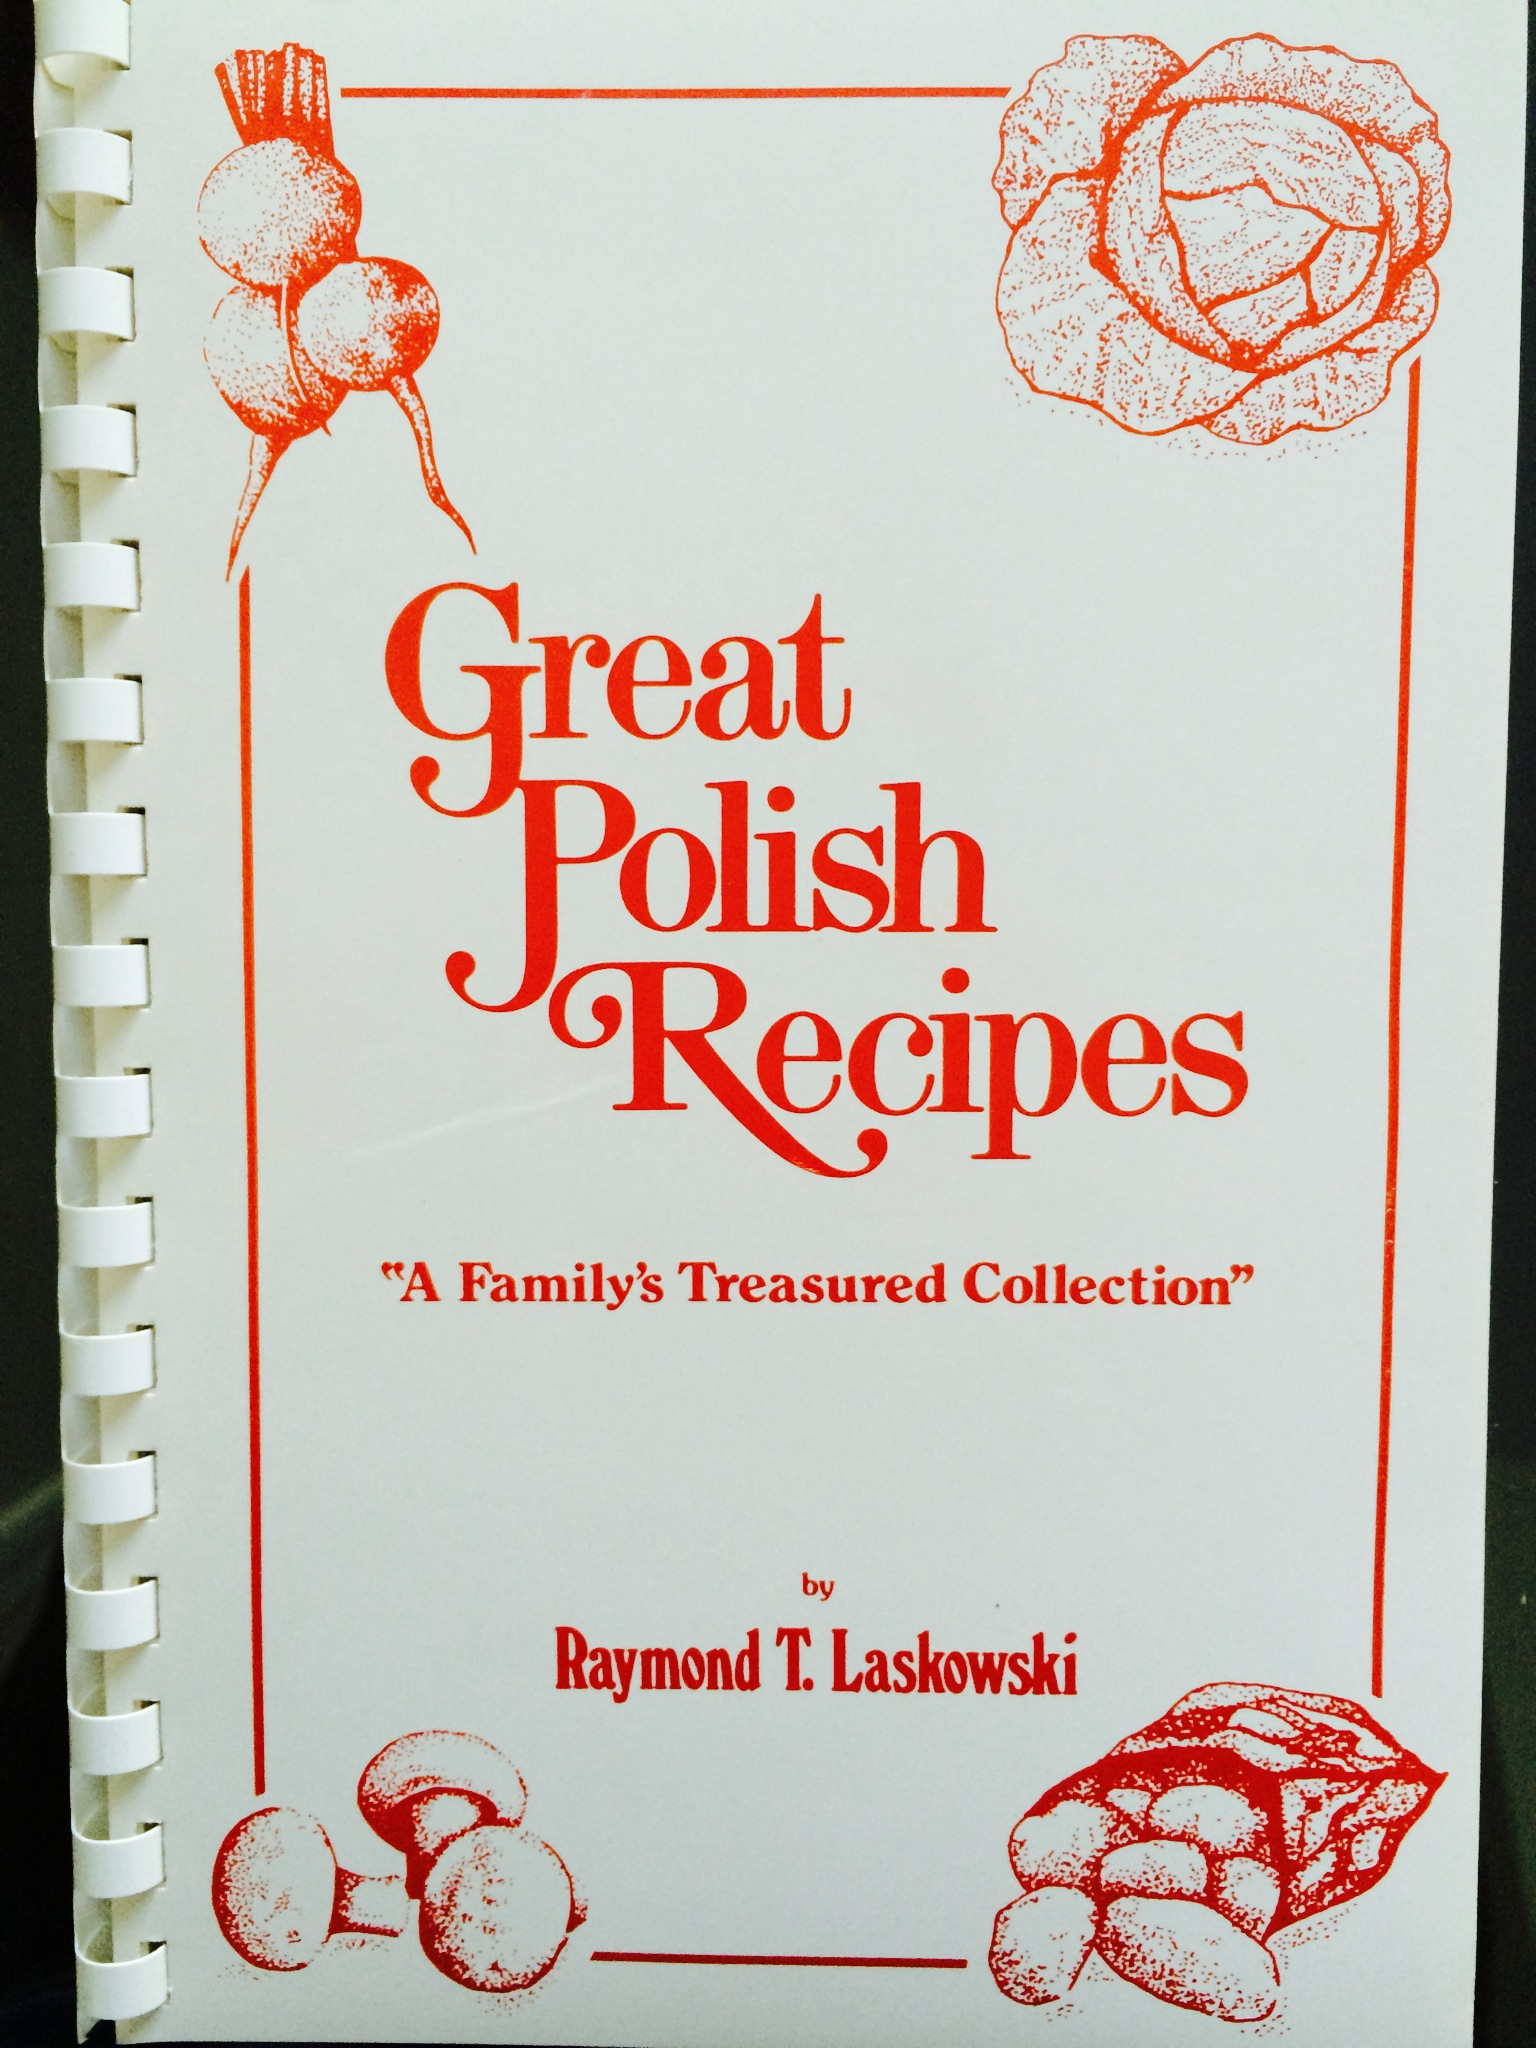 Great Polish Recipes.jpg